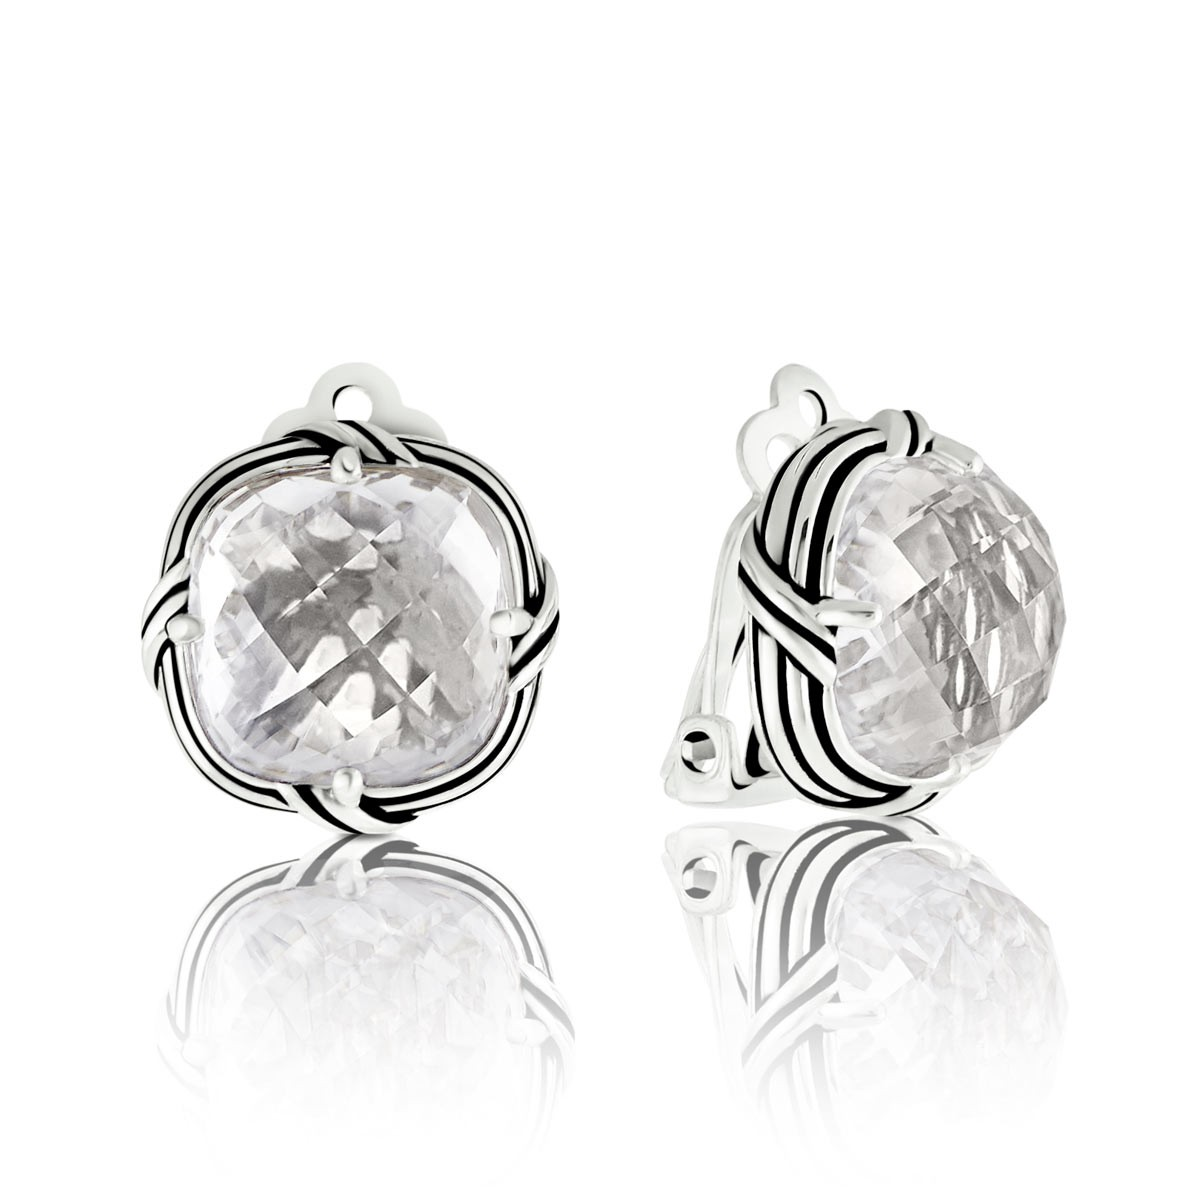 Peter Thomas Roth Ribbon And Reed Rock Crystal Clip Earrings In Sterling Silver